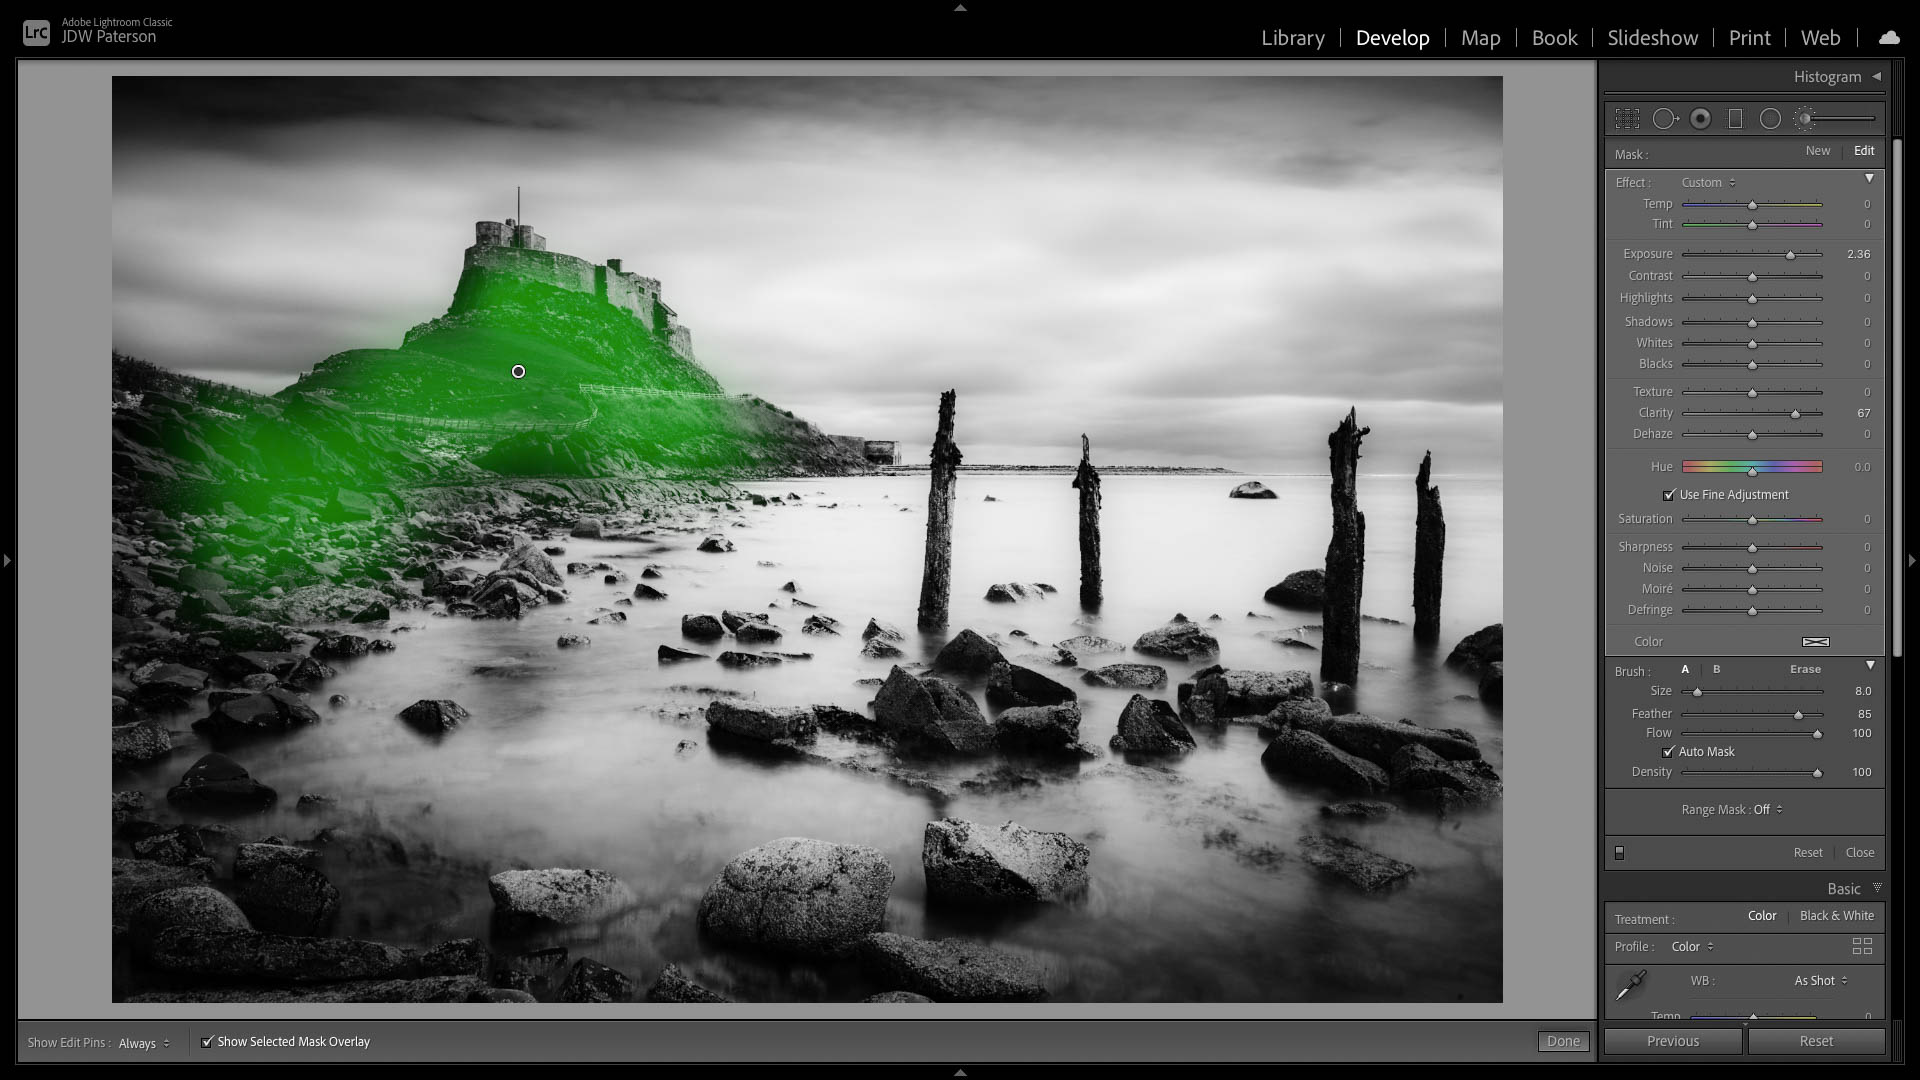 Lightroom screenshot showing painting Clarity selectively with the Adjustment Brush